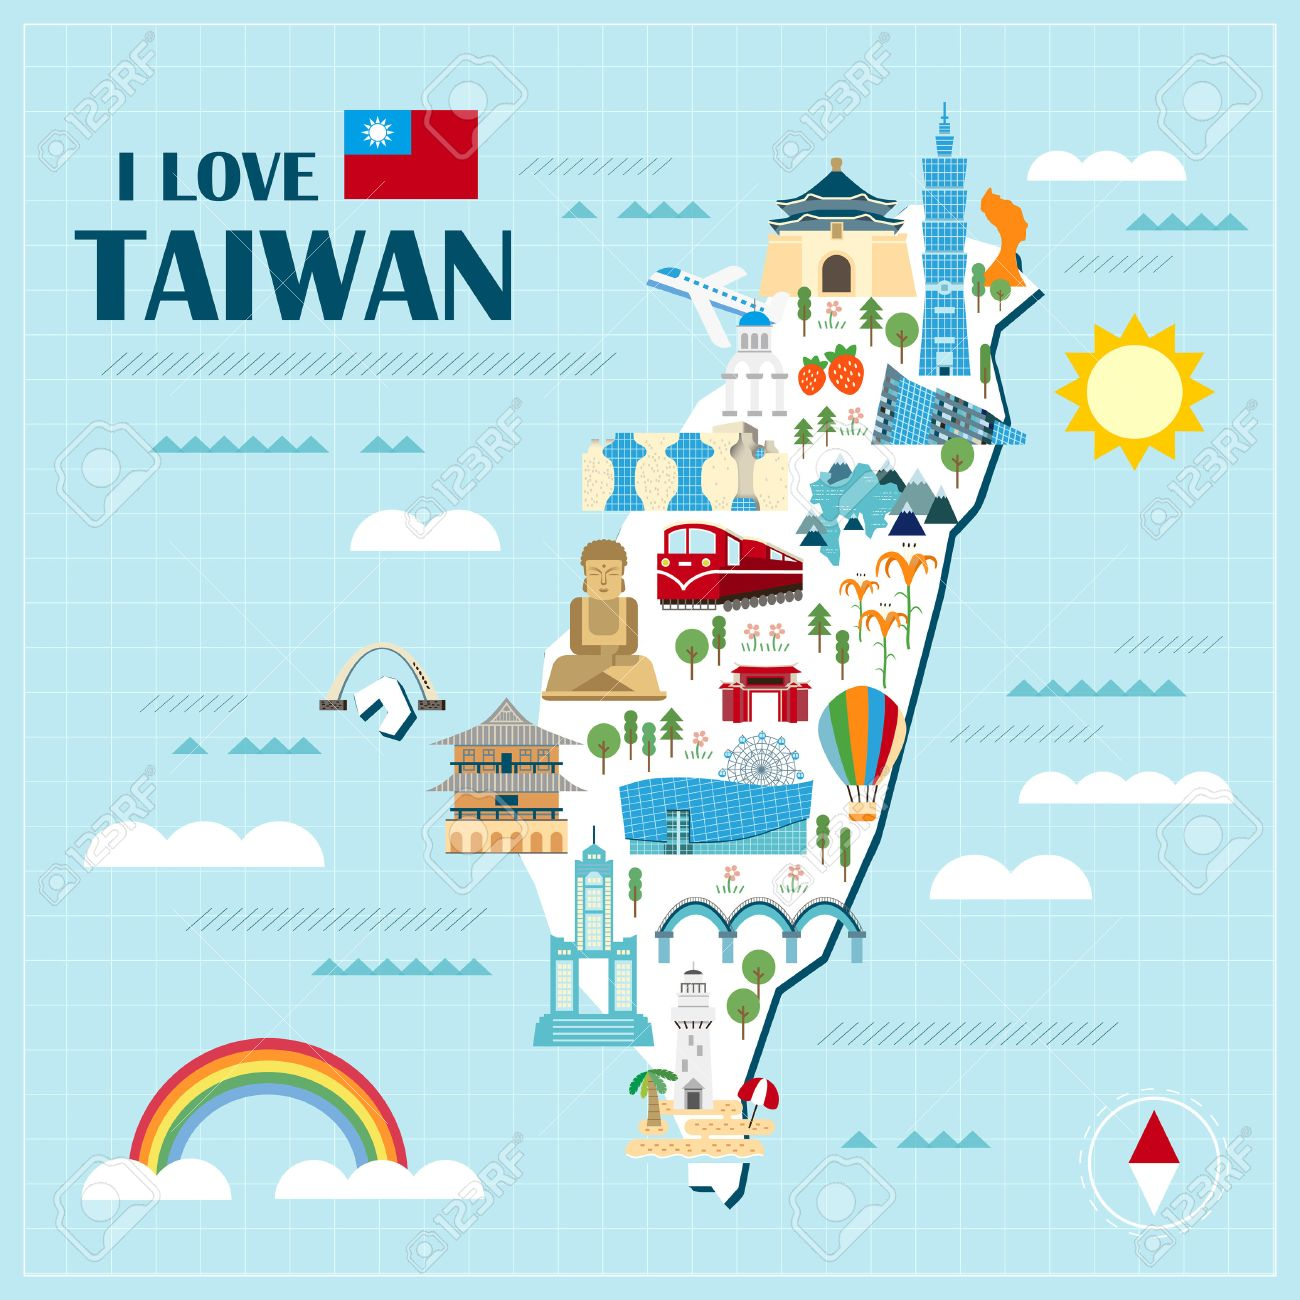 ly Taiwan travel map design in flat style on detail design, travel design, blog design, monthly newsletter design, business design, geographic coordinate system, map projection, contour line, 2013 latest house design, faq design, digital mapping, simple timeline design, economic geography, 2013 best graphic design, political geography, brochure design, web design, geographic information system, chart design, logo design, book design, top page design, flag design, design design, spatial analysis, zipcode design, universal transverse mercator coordinate system, aerial photography, services design, donate design, early world maps,